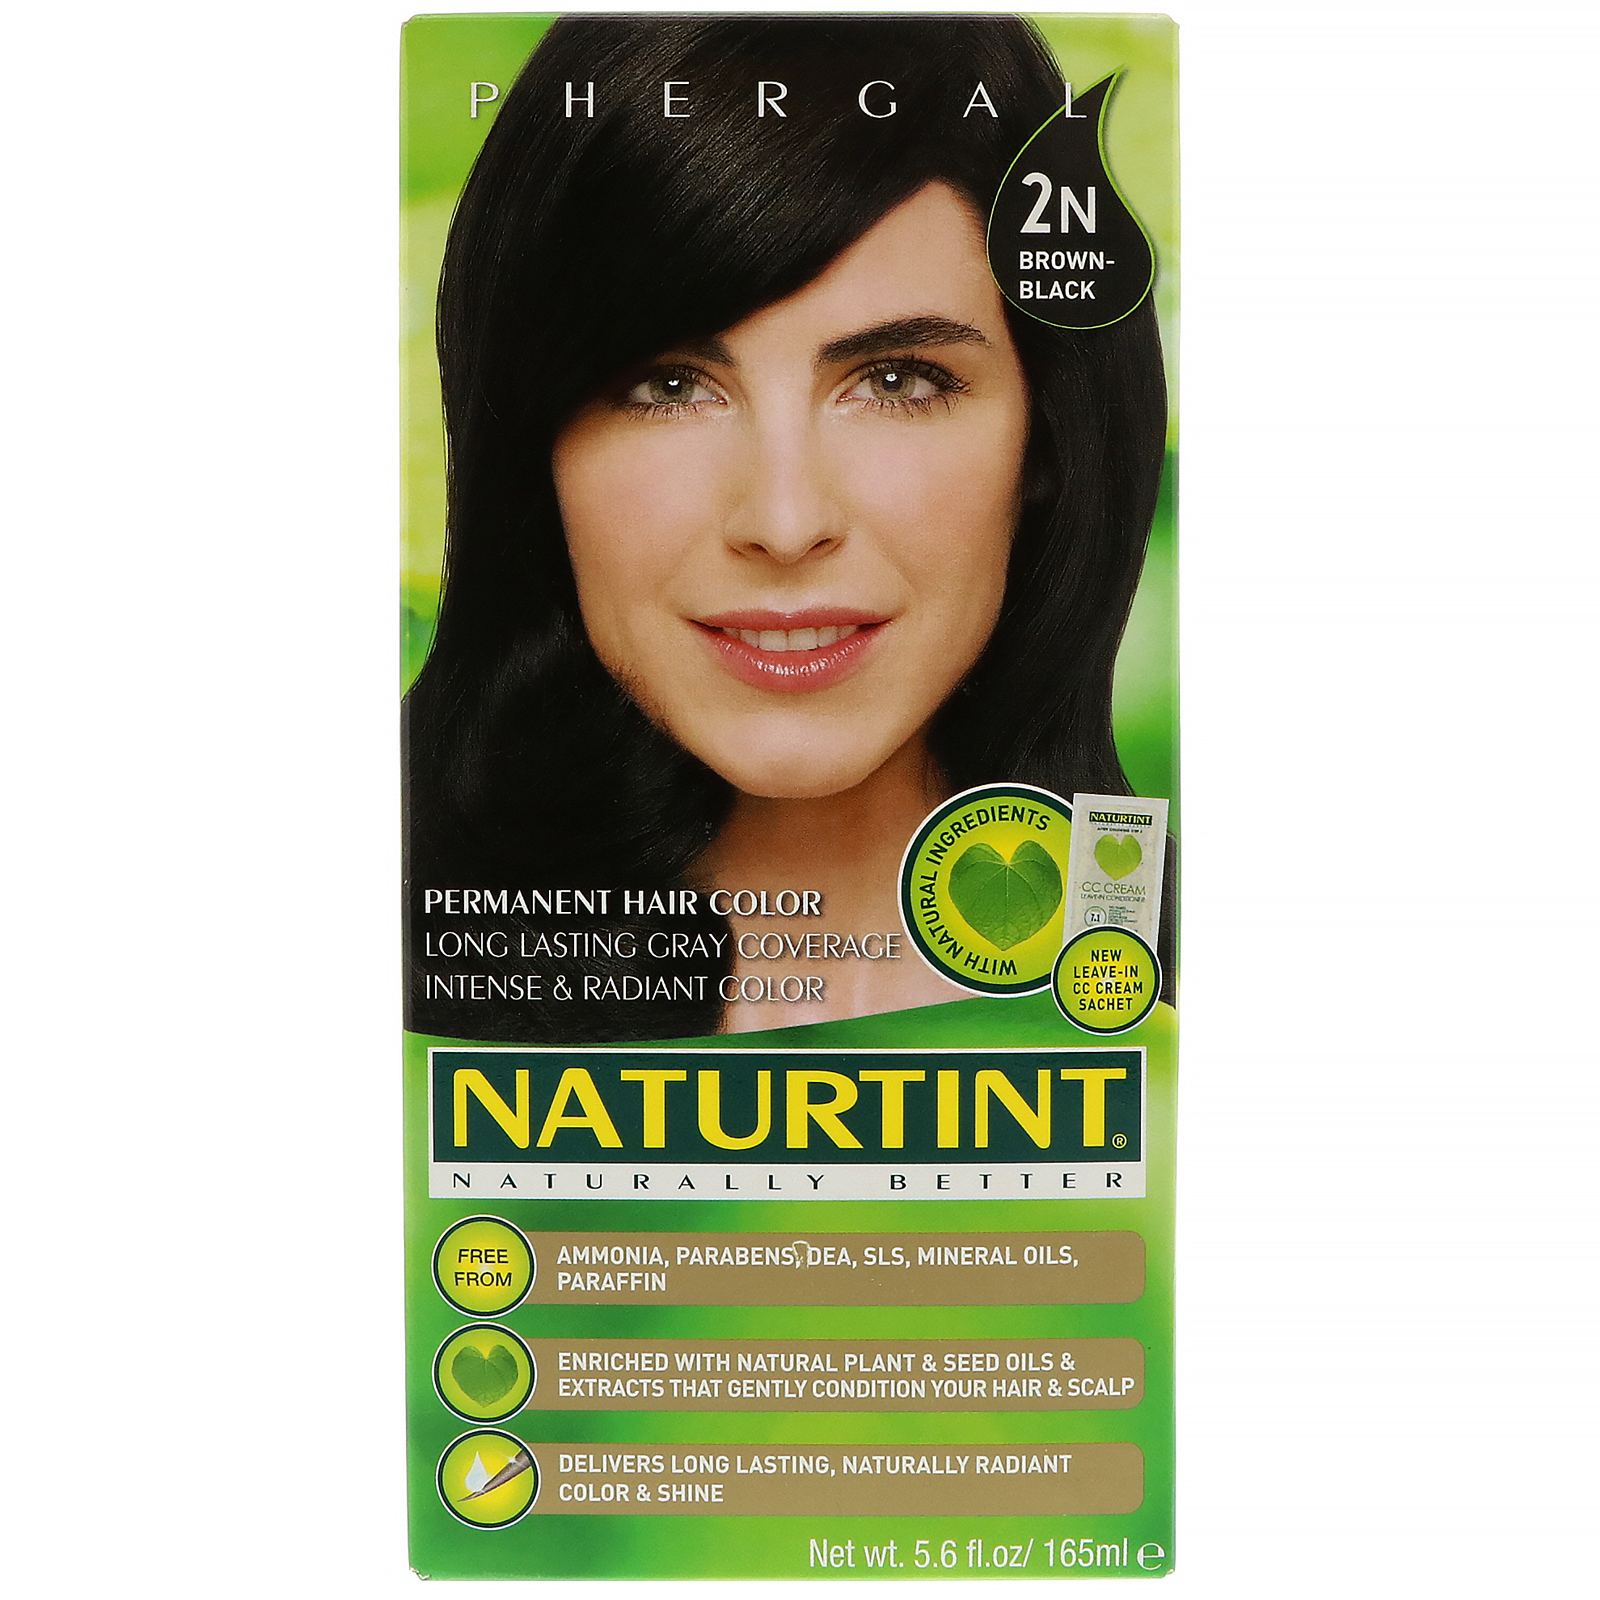 NATURTINT - PERMANENT HAIR COLOR - (2N - Brown Black) - 5.6oz